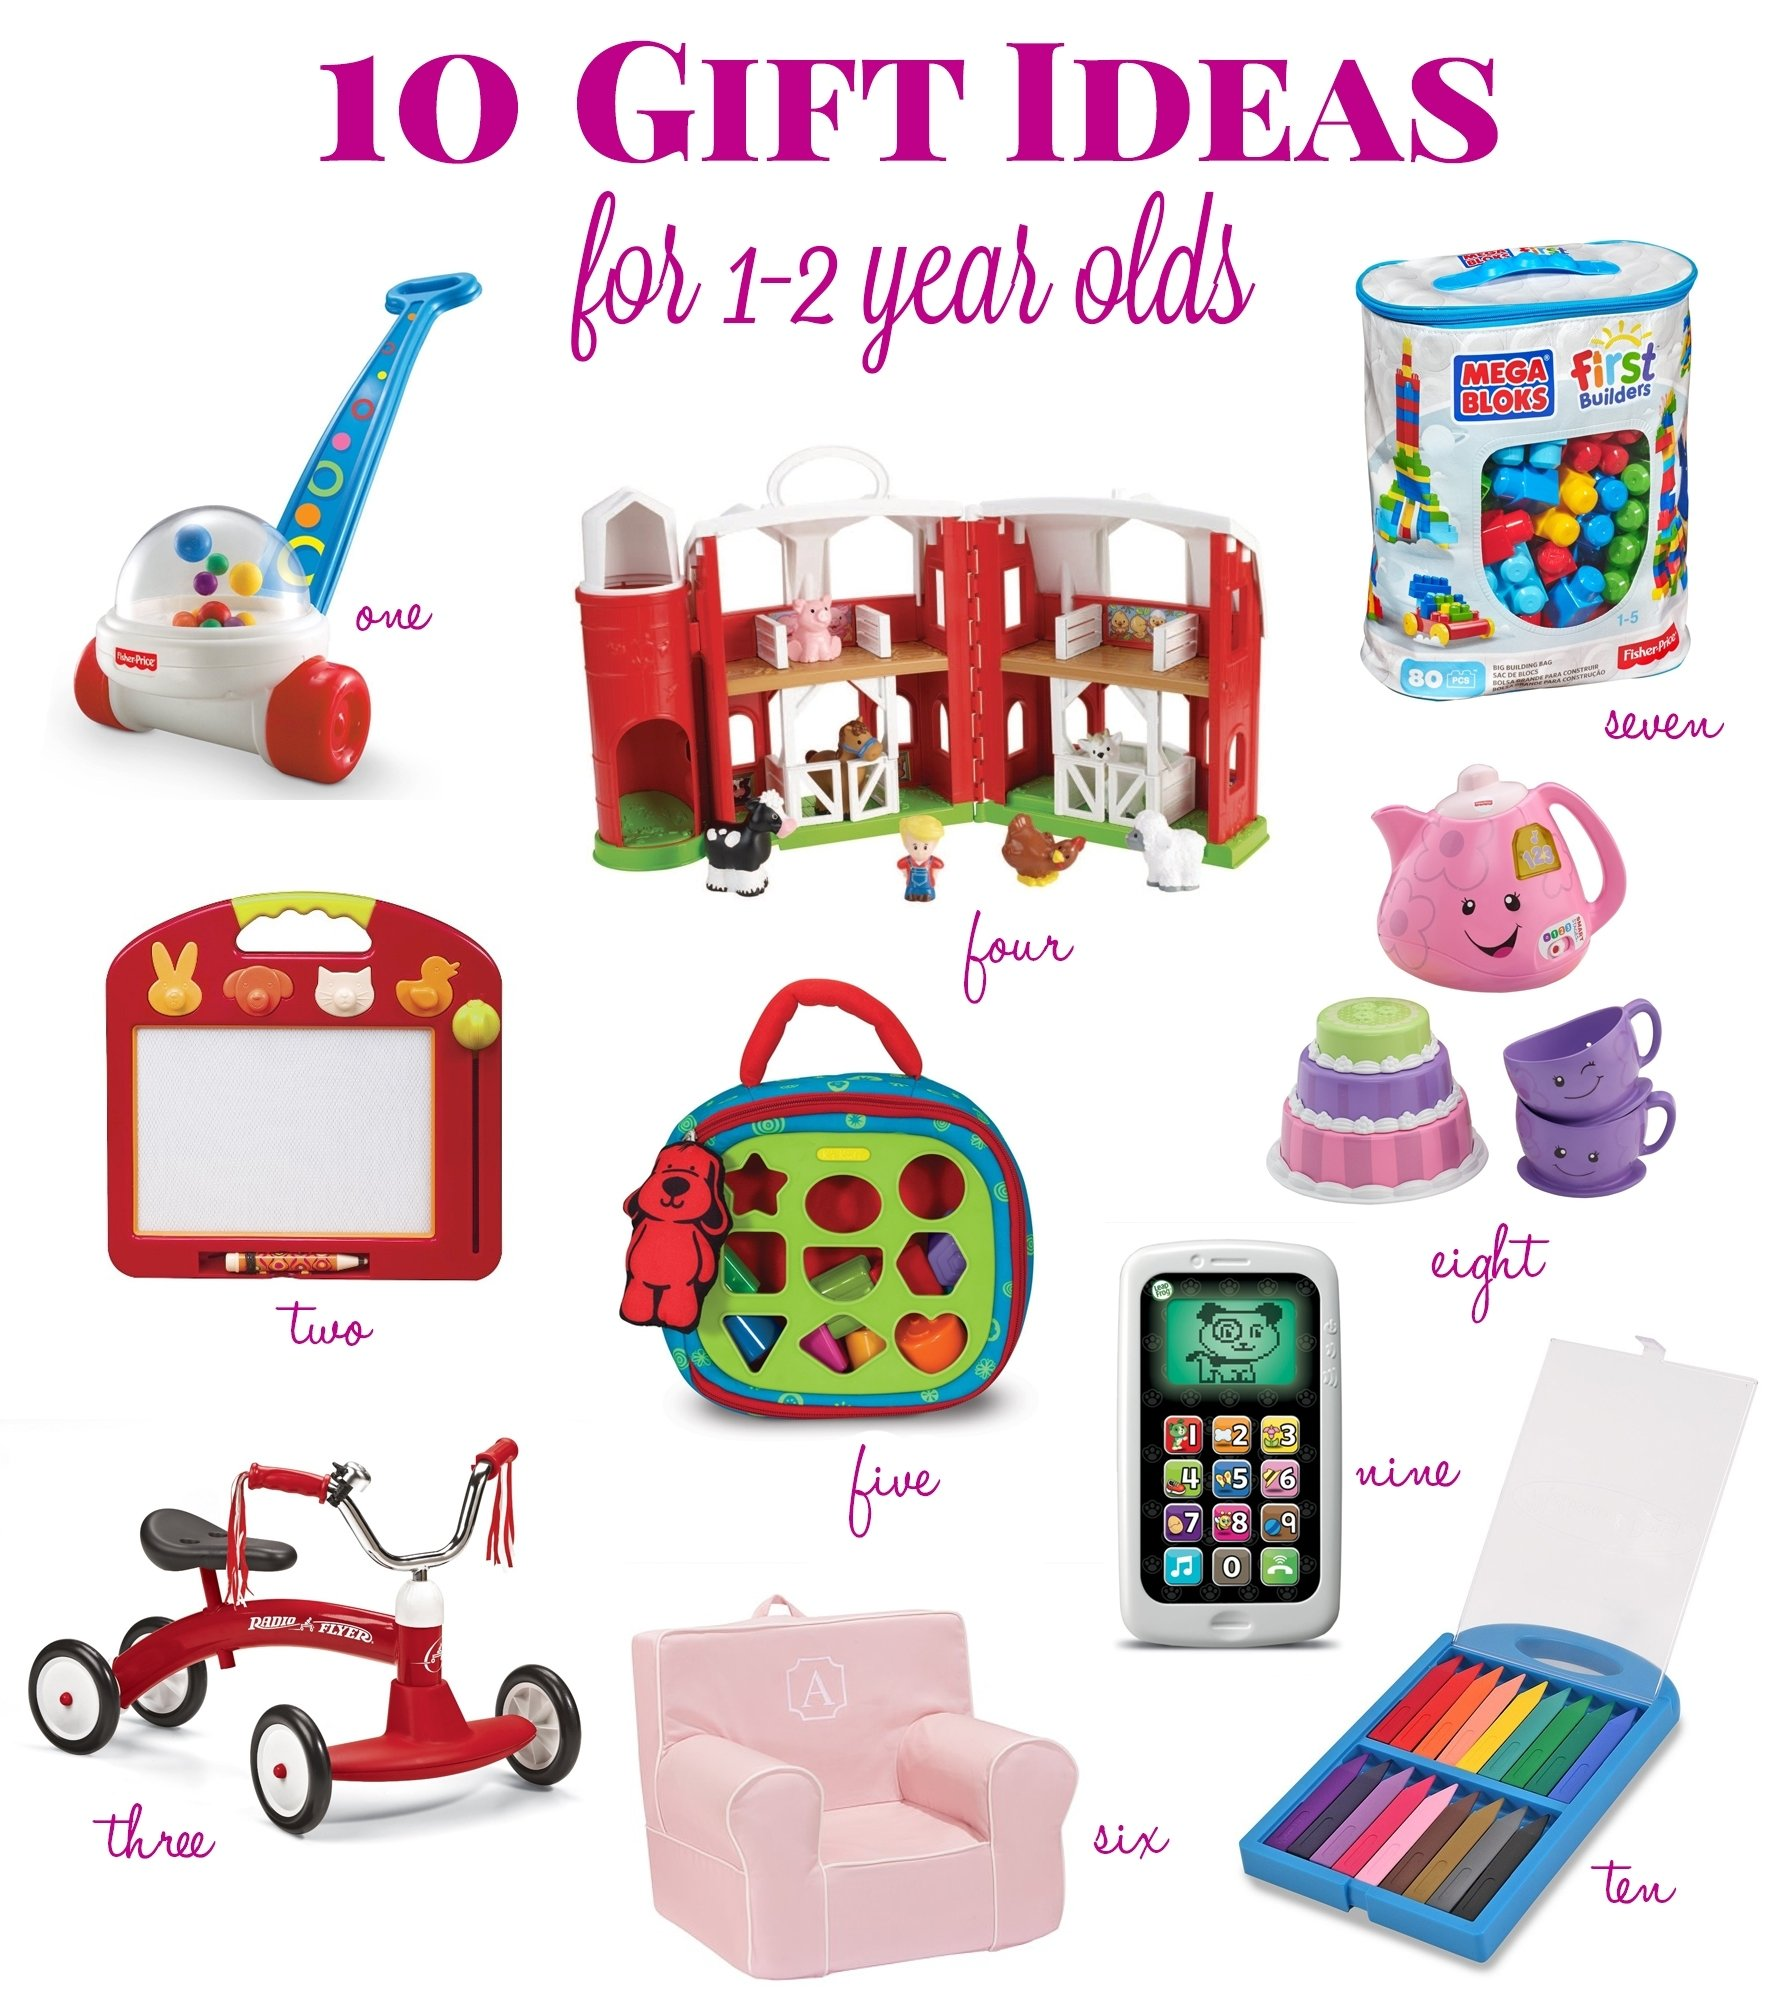 10 Best Gift Ideas For A 2 Year Old gift ideas for a 1 year old lifes tidbits 8 2020